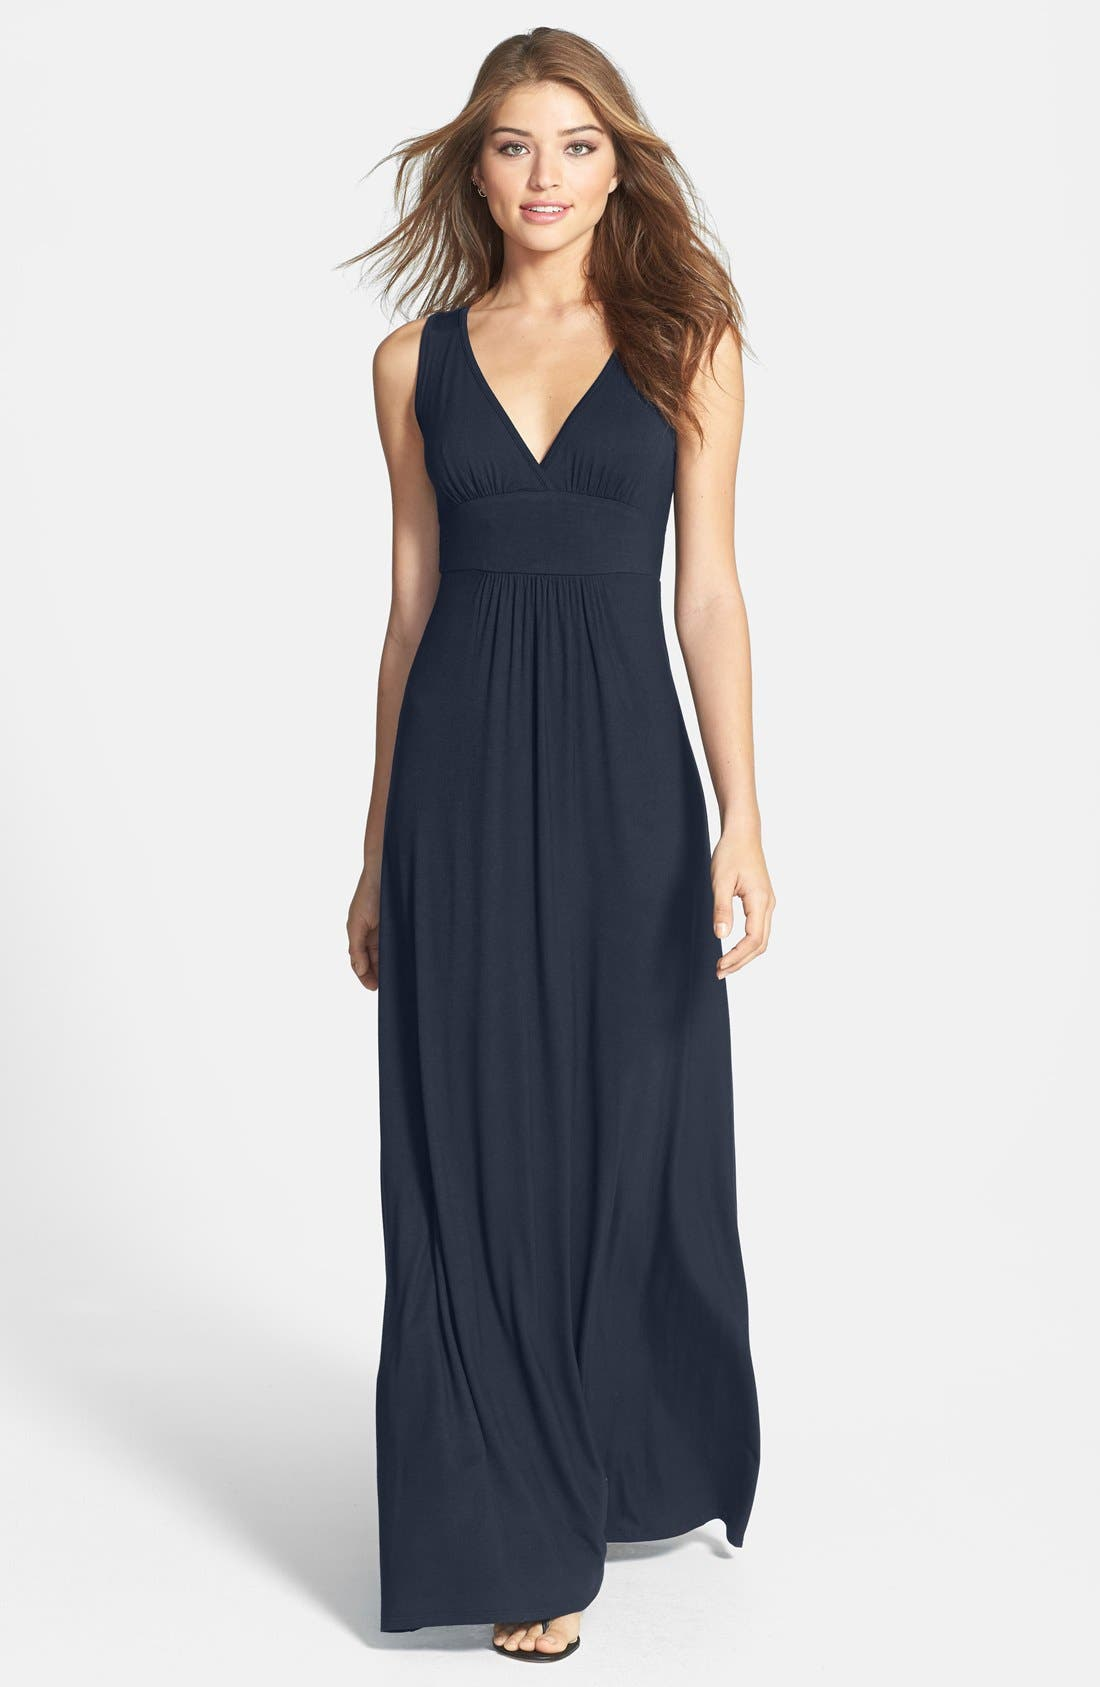 Alternate Image 1 Selected - Loveappella V-Neck Jersey Maxi Dress (Regular & Petite)